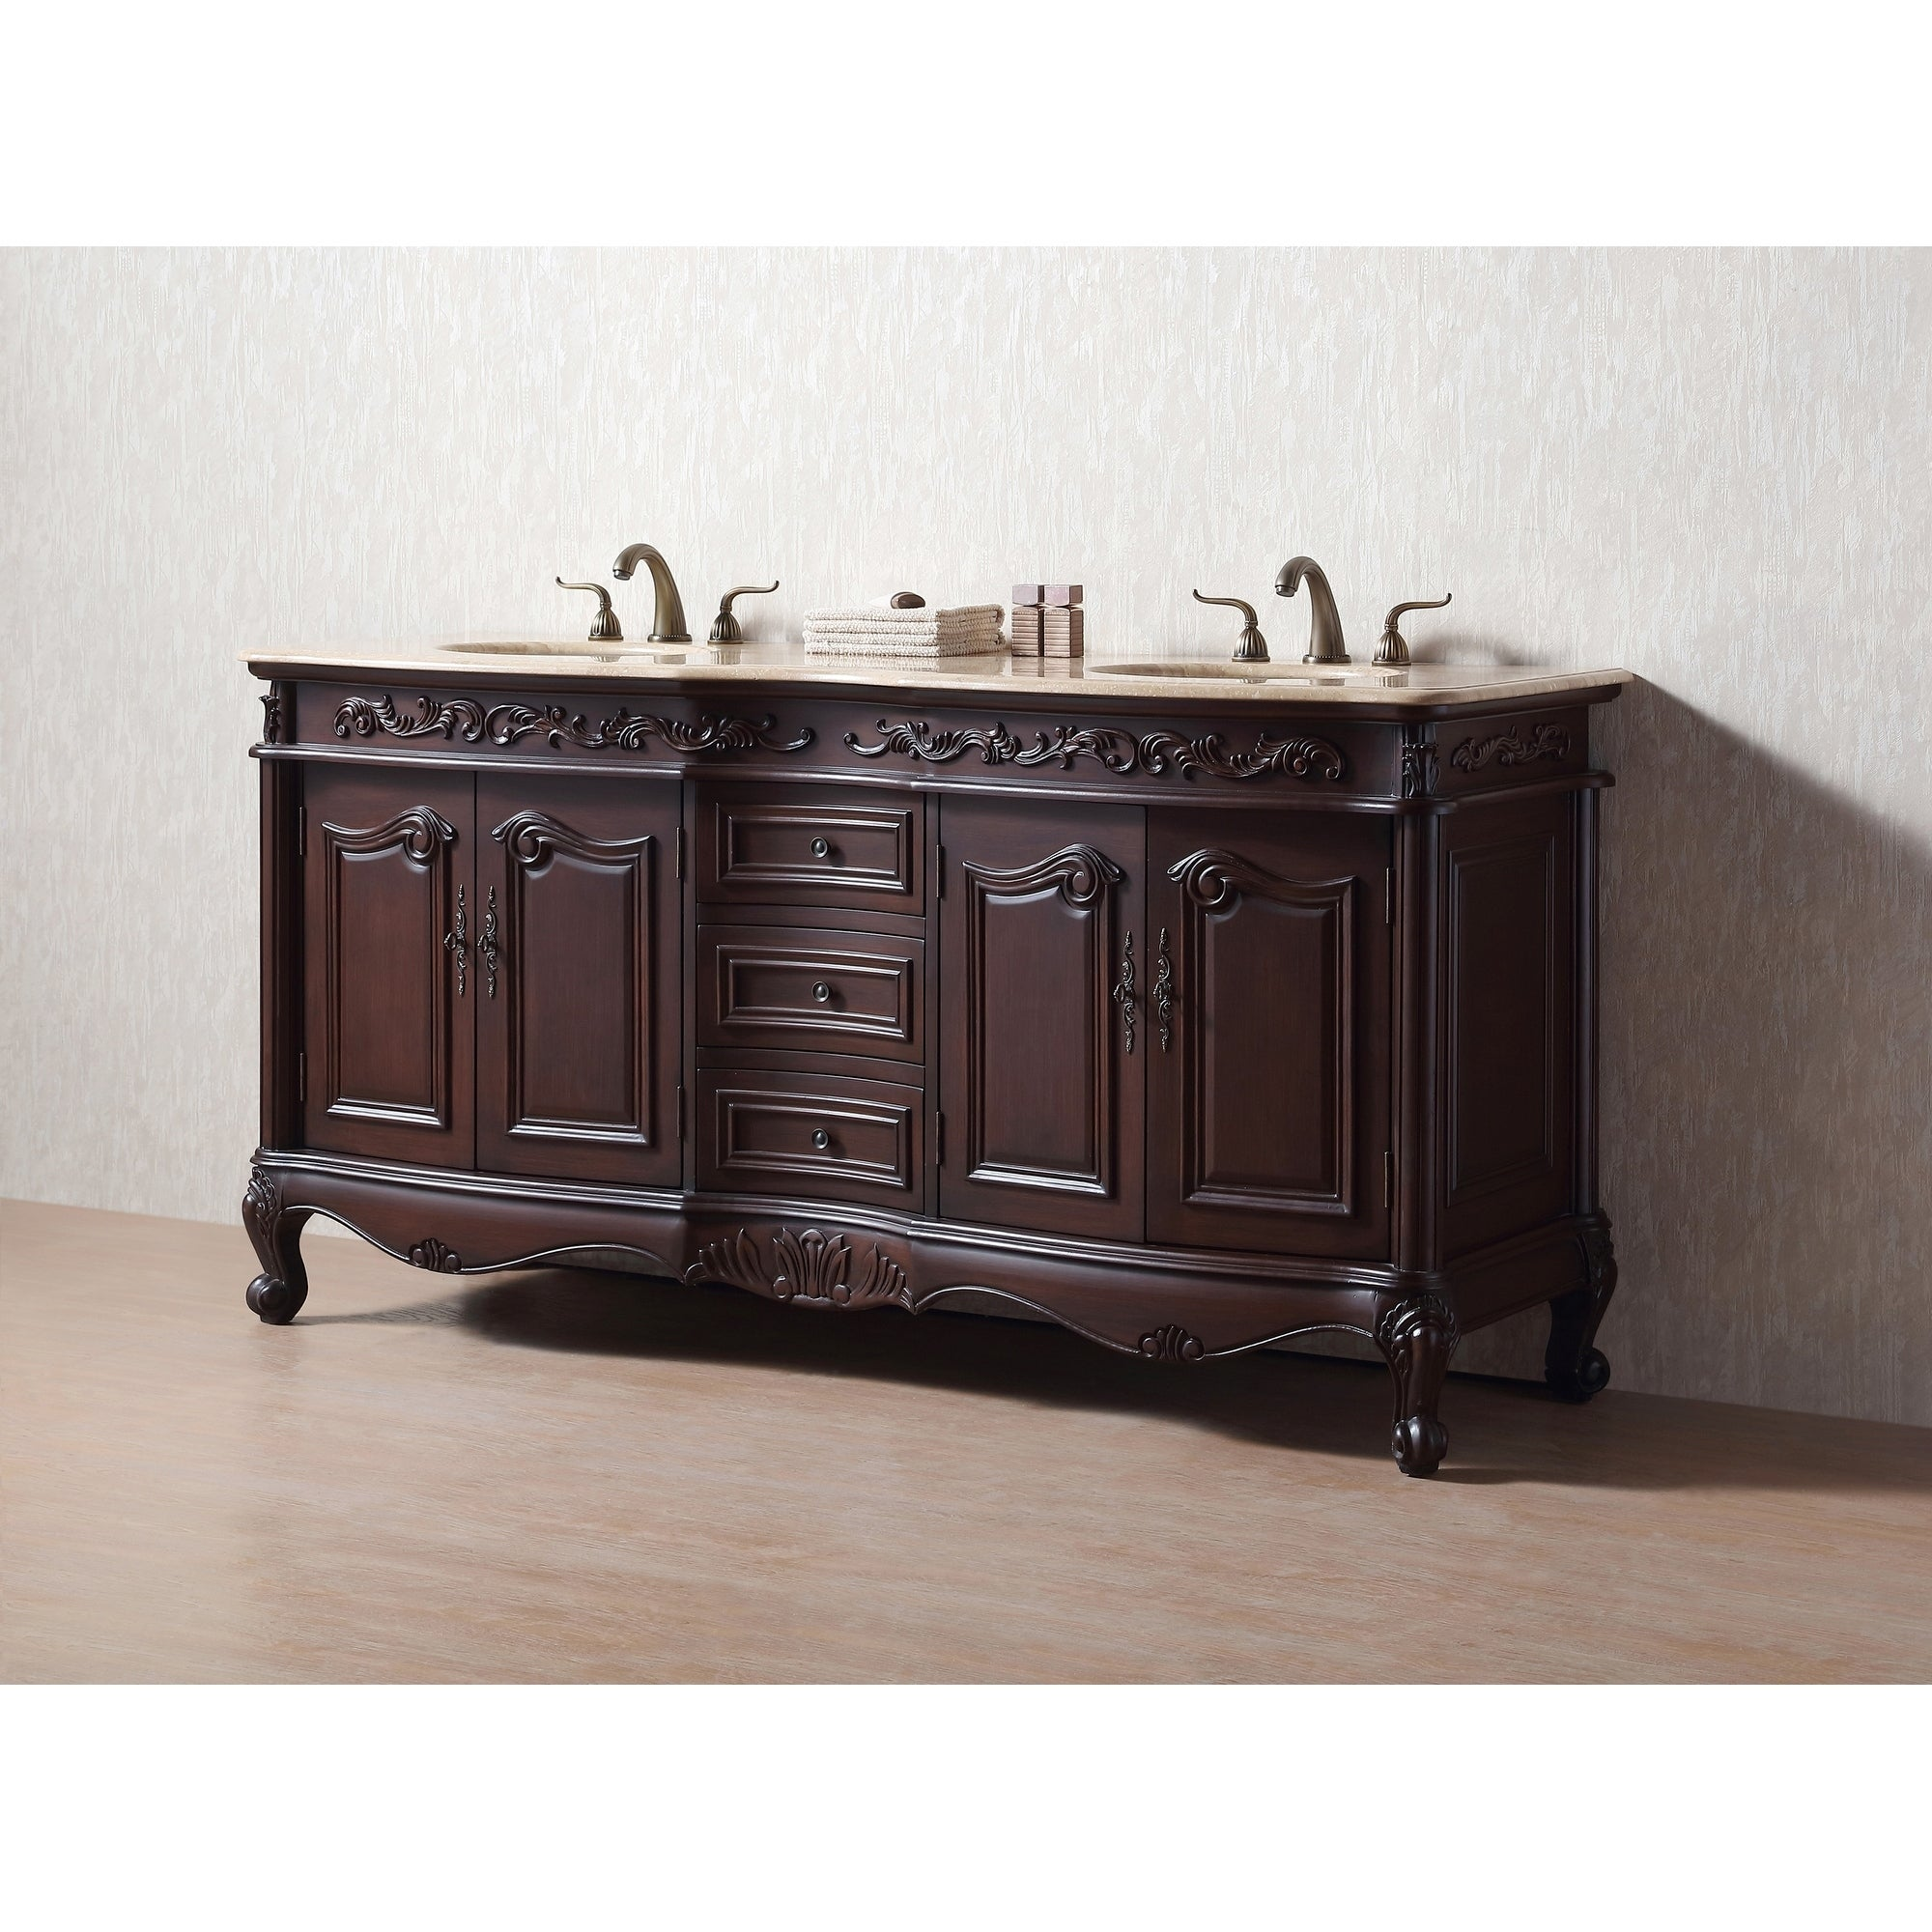 old vanities cabinet james bathroom pin martin finish amalfi cherry vanity double sink